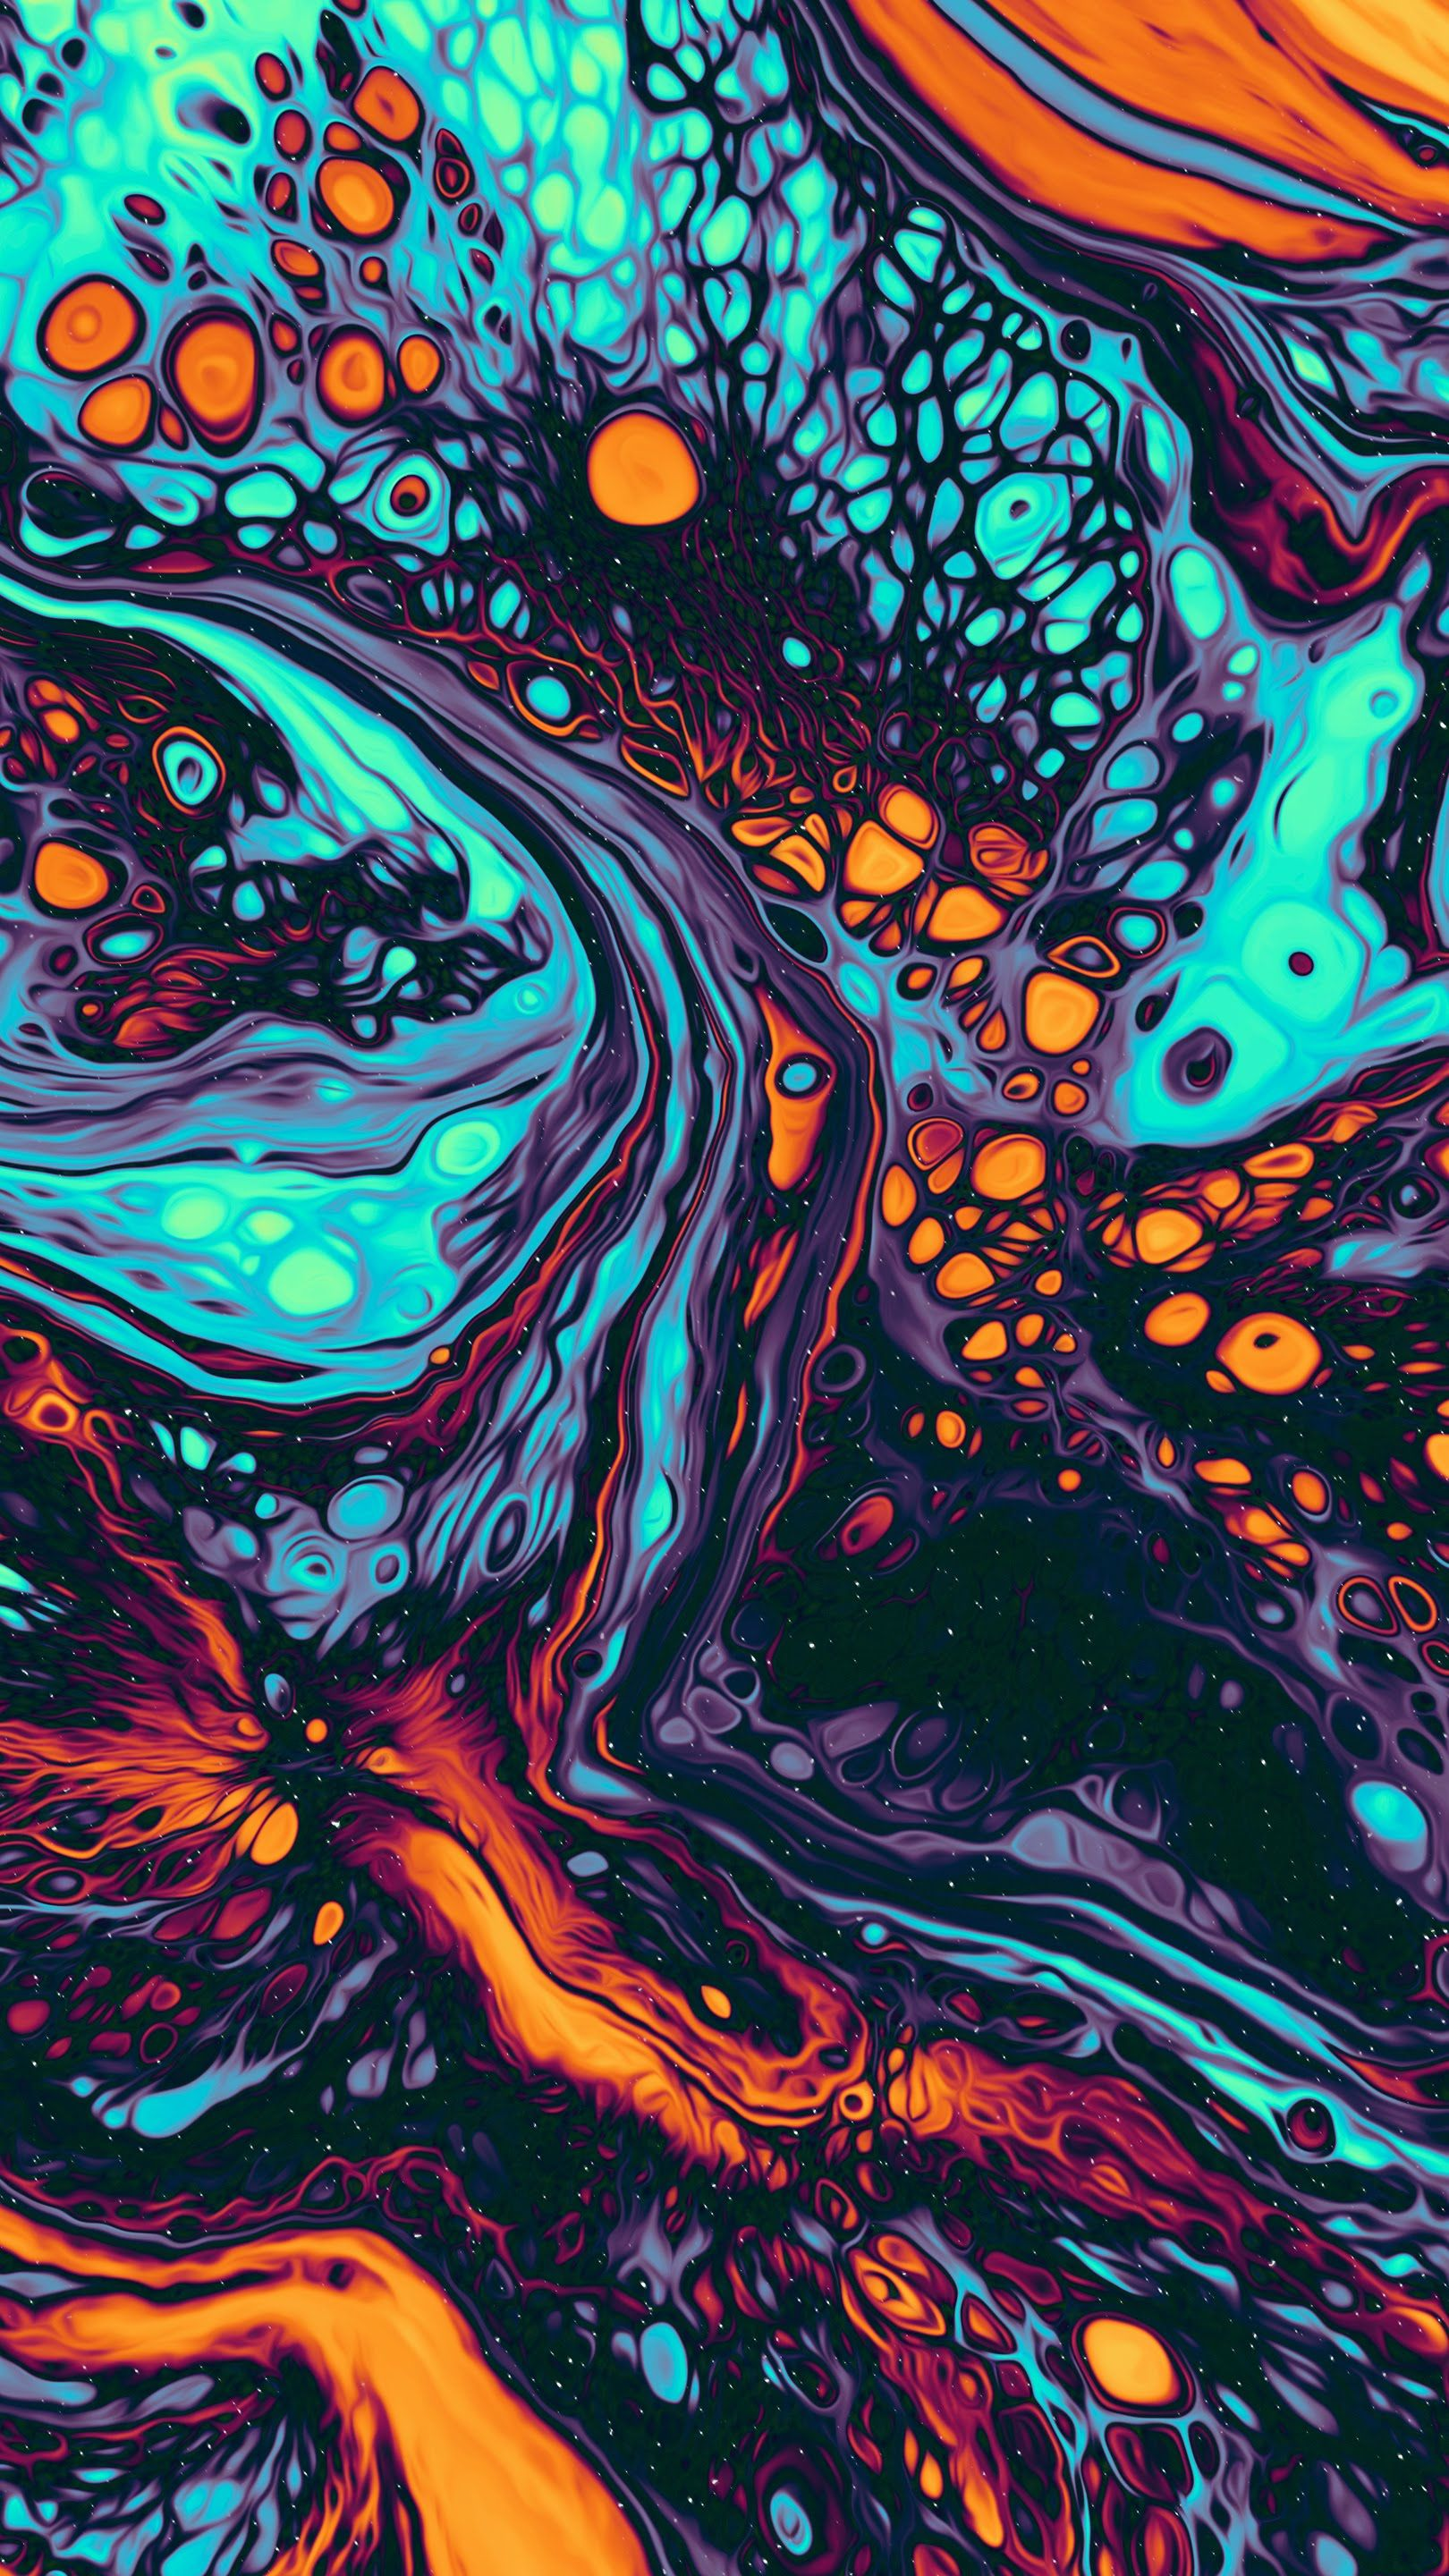 Ios 11 And Iphone 11 Wallpapers Hd For Download With Images